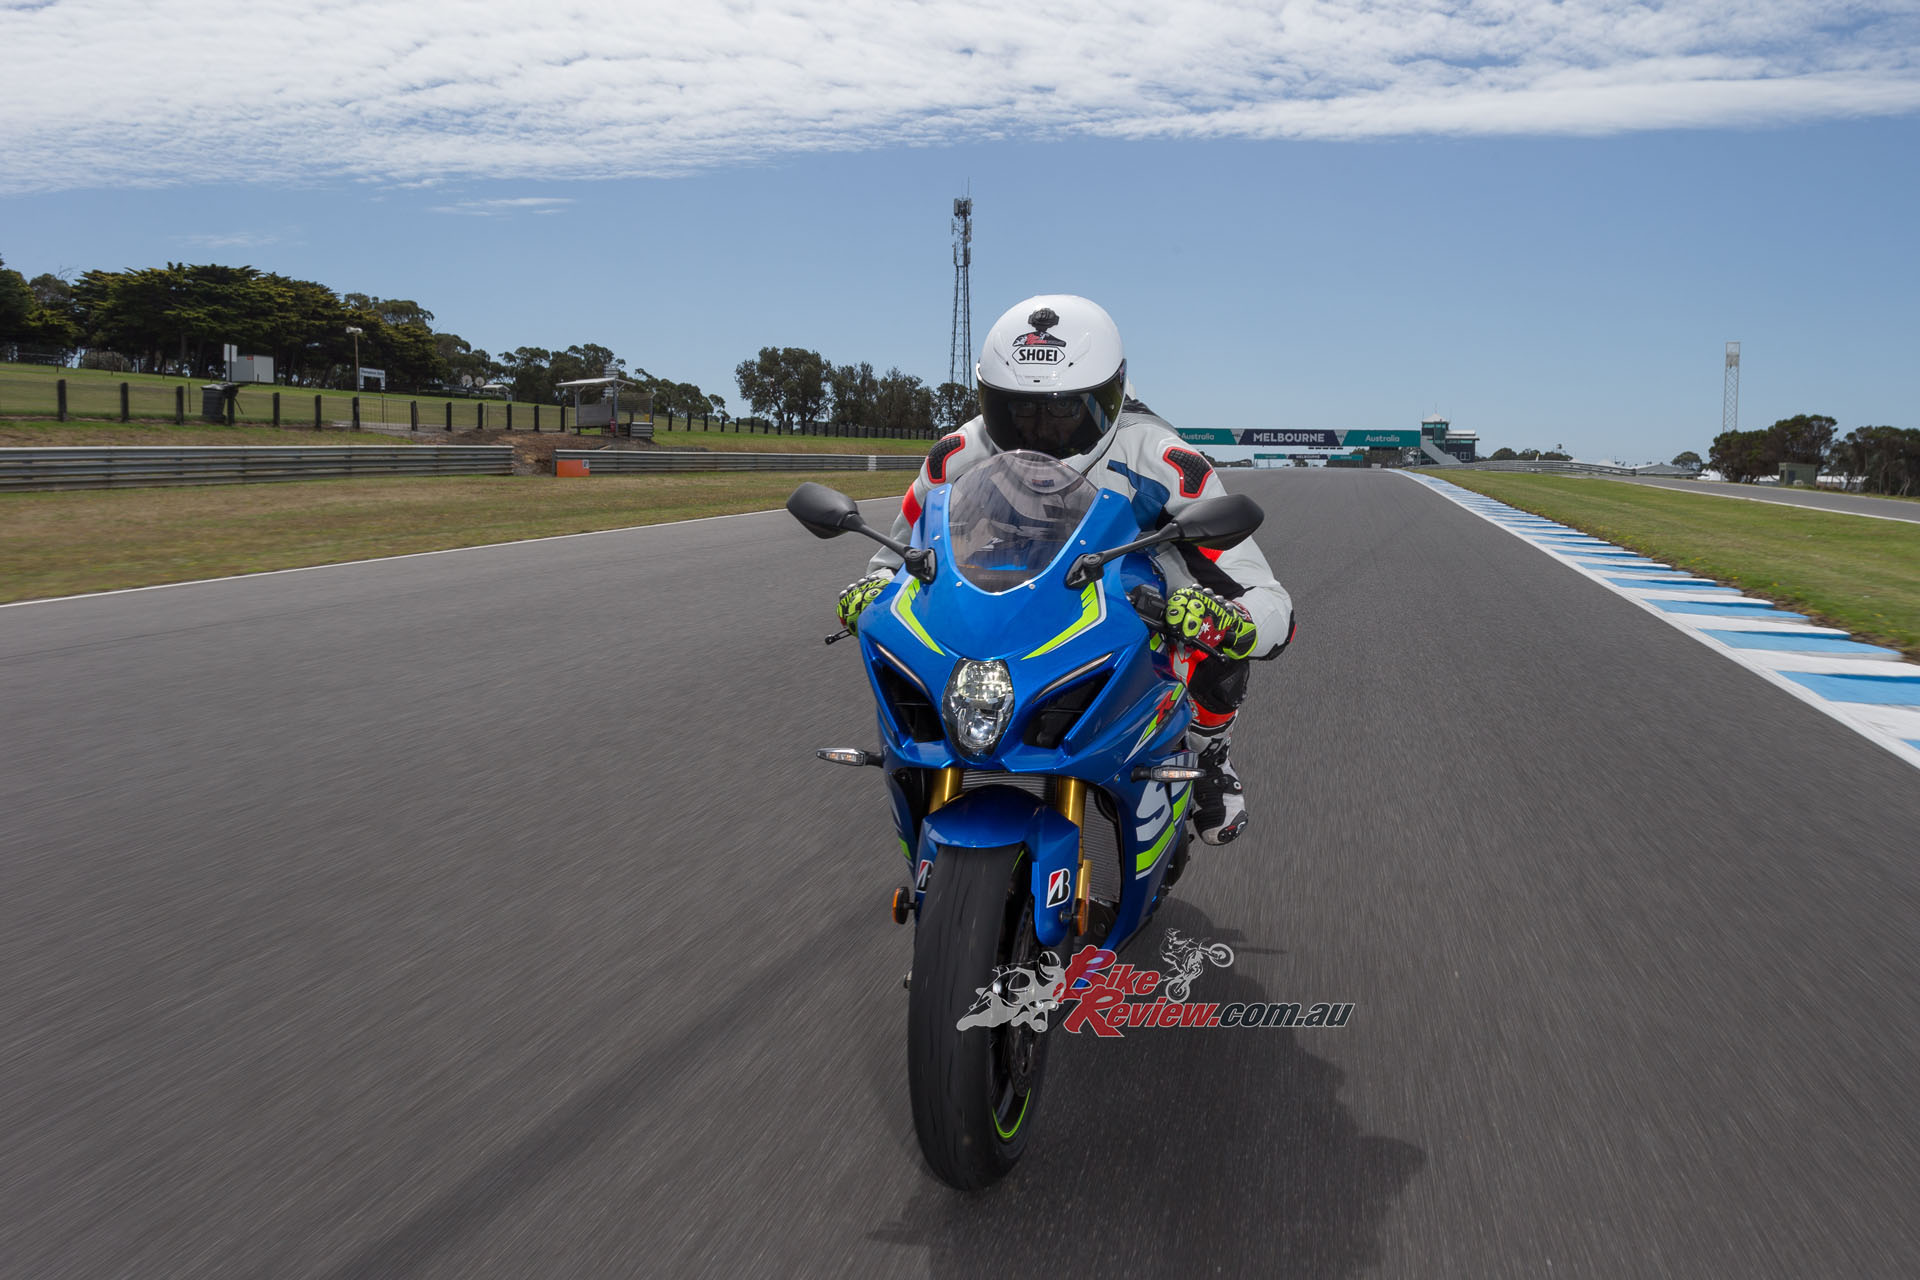 I topped out at 290km/h on the GSX-R1000R as I had to roll off early due to my injured right knee, however, some of the other journalists got as high as 295km/h.